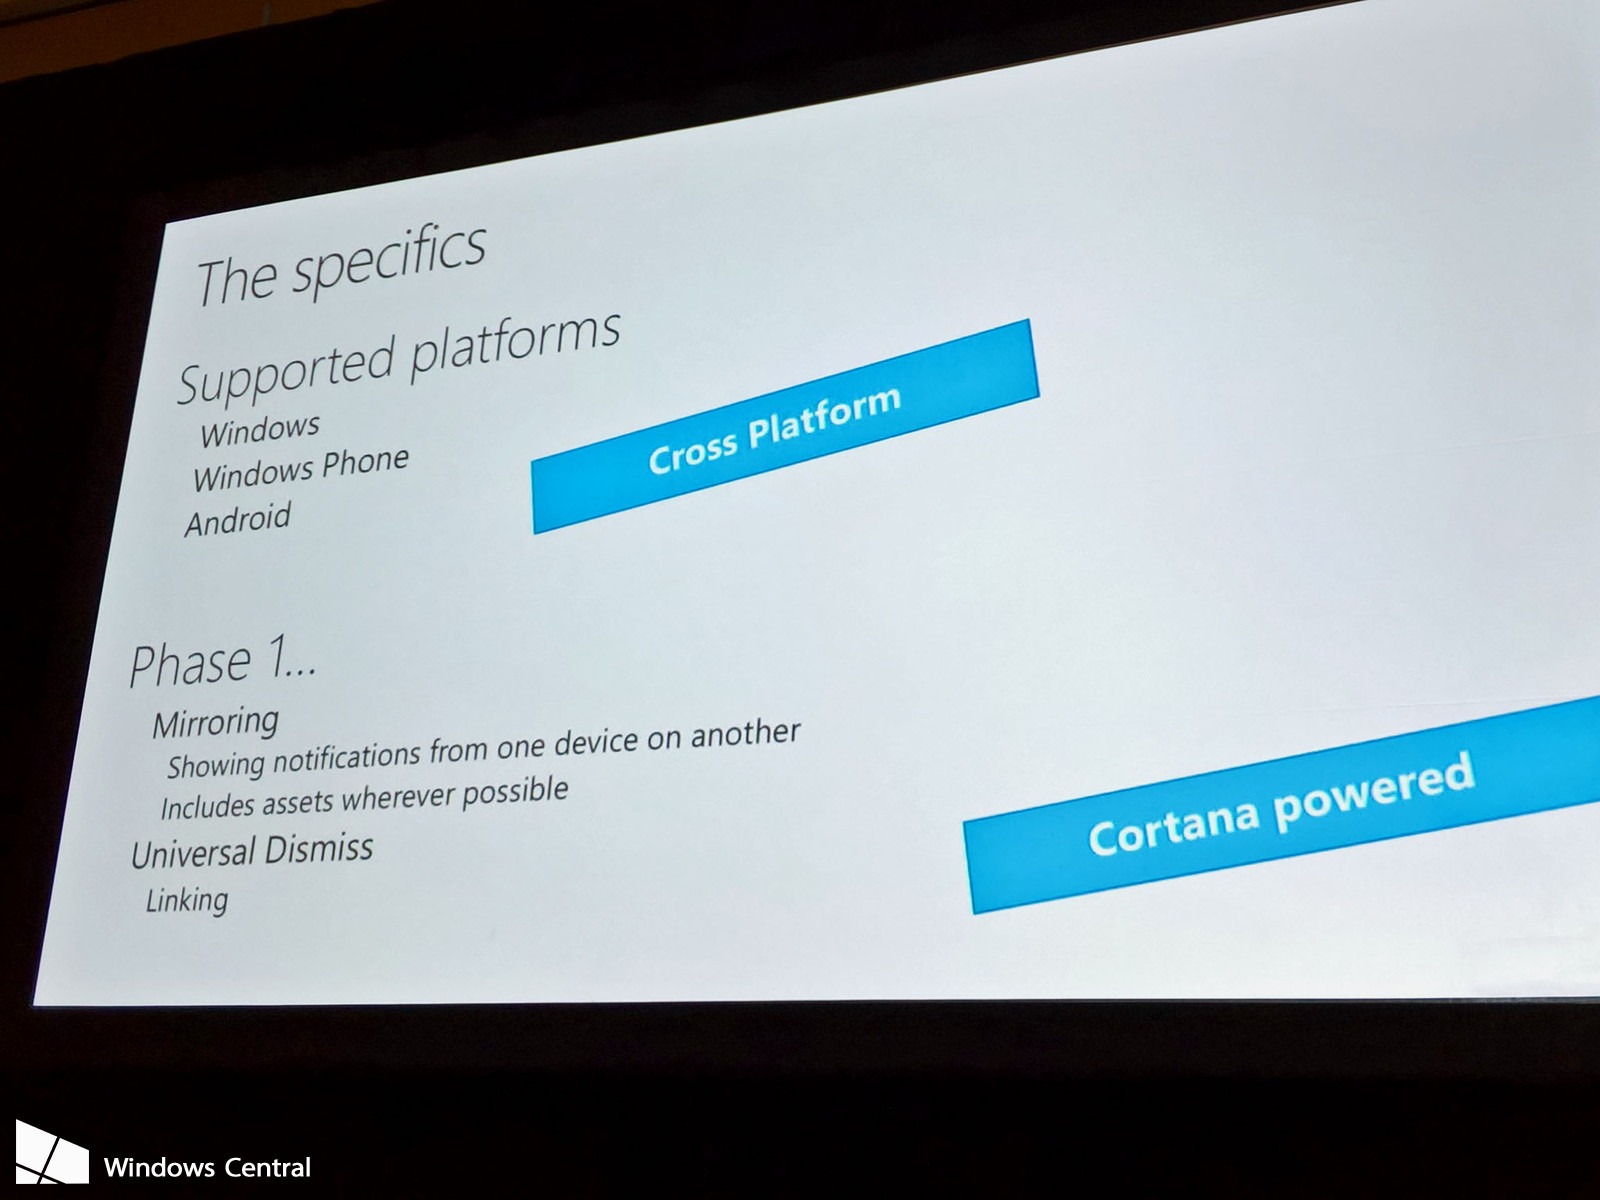 Windows 10 es compatible con las notificaciones de Android y Windows 10 Mobile 1